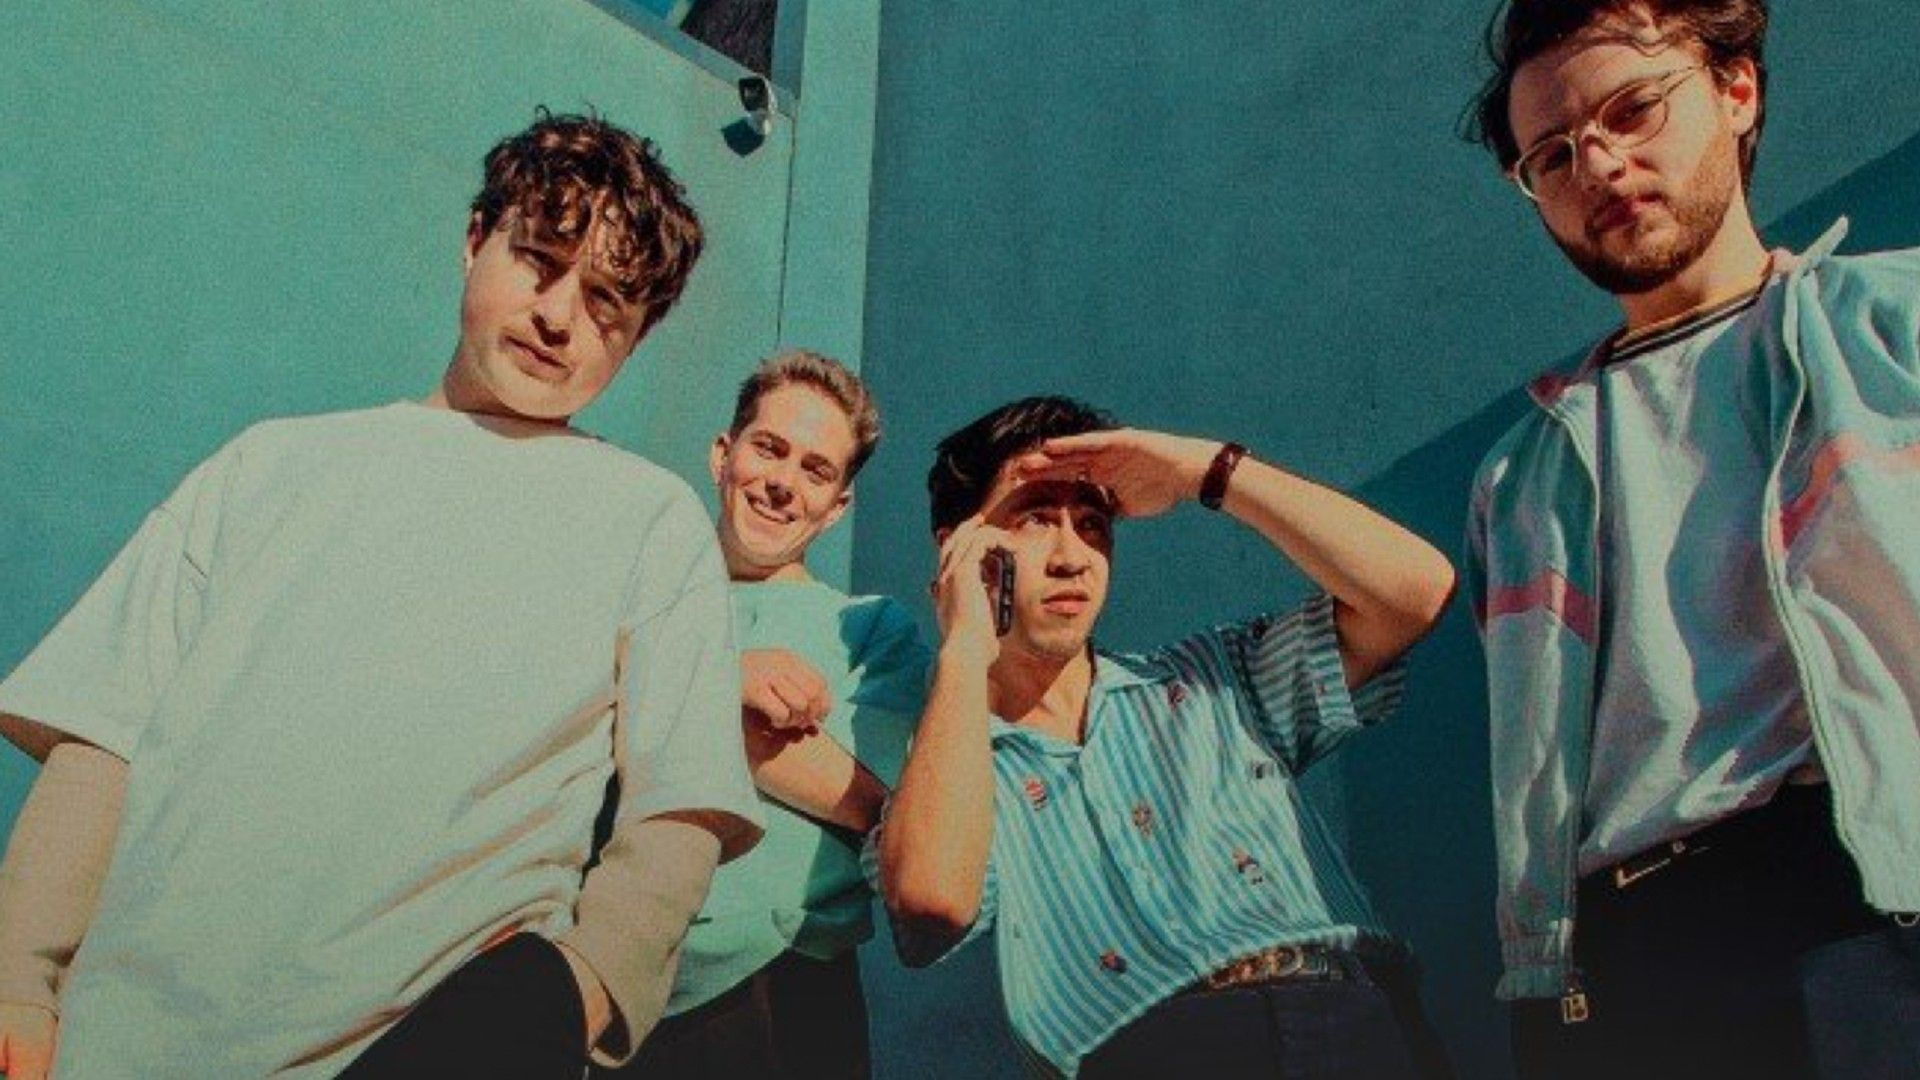 The Million Announce The Last Call Tour; Playing Wollongong, Newcastle, Central Coast and Sydney